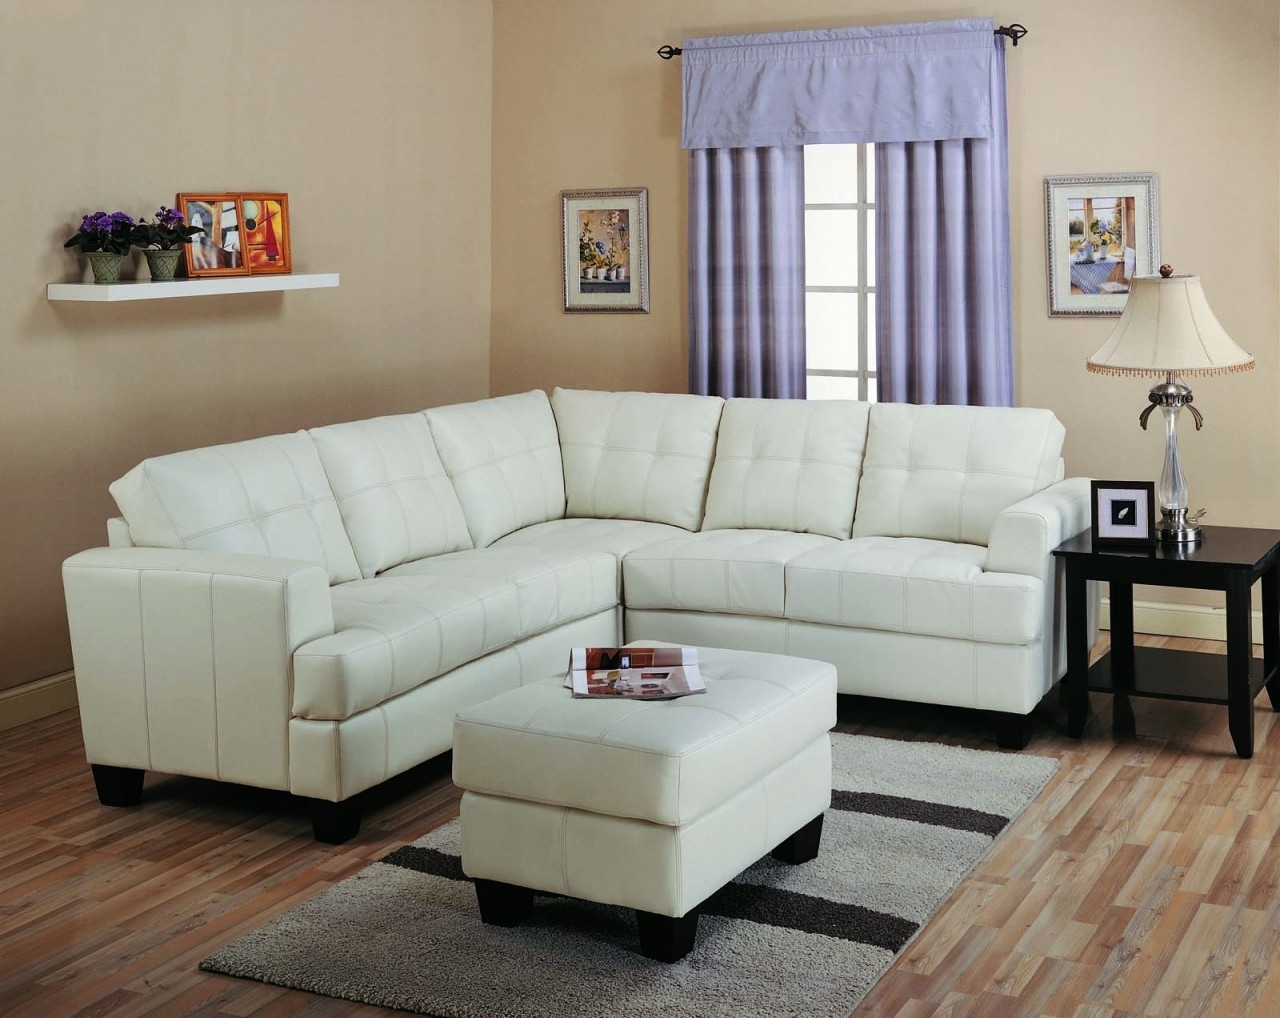 Canada Sectional Sofas For Small Spaces Regarding Trendy Furniture (View 4 of 15)